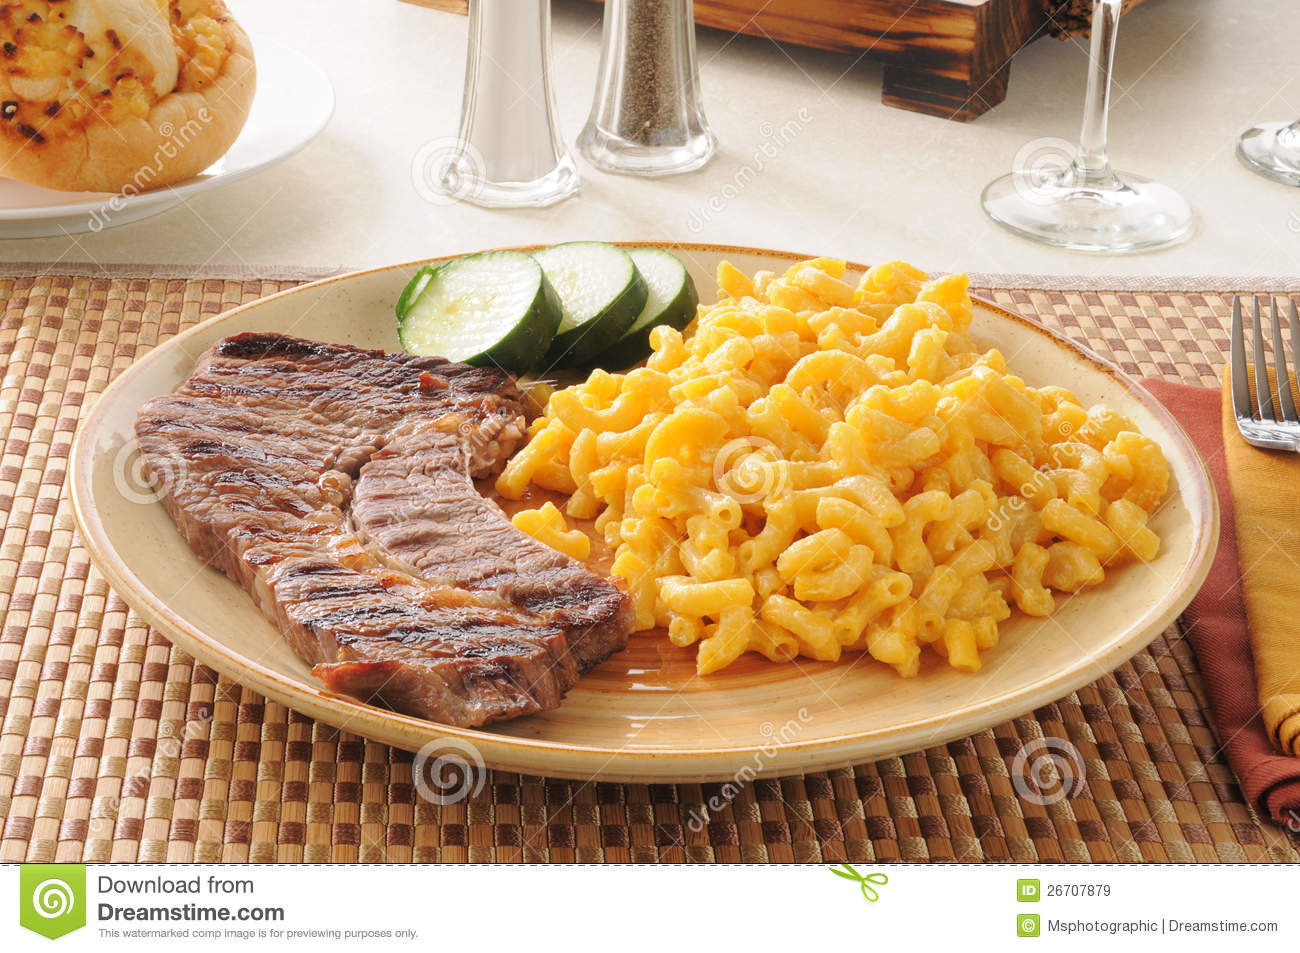 Steak With Macaroni And Cheese Royalty Free Stock Images - Image ...